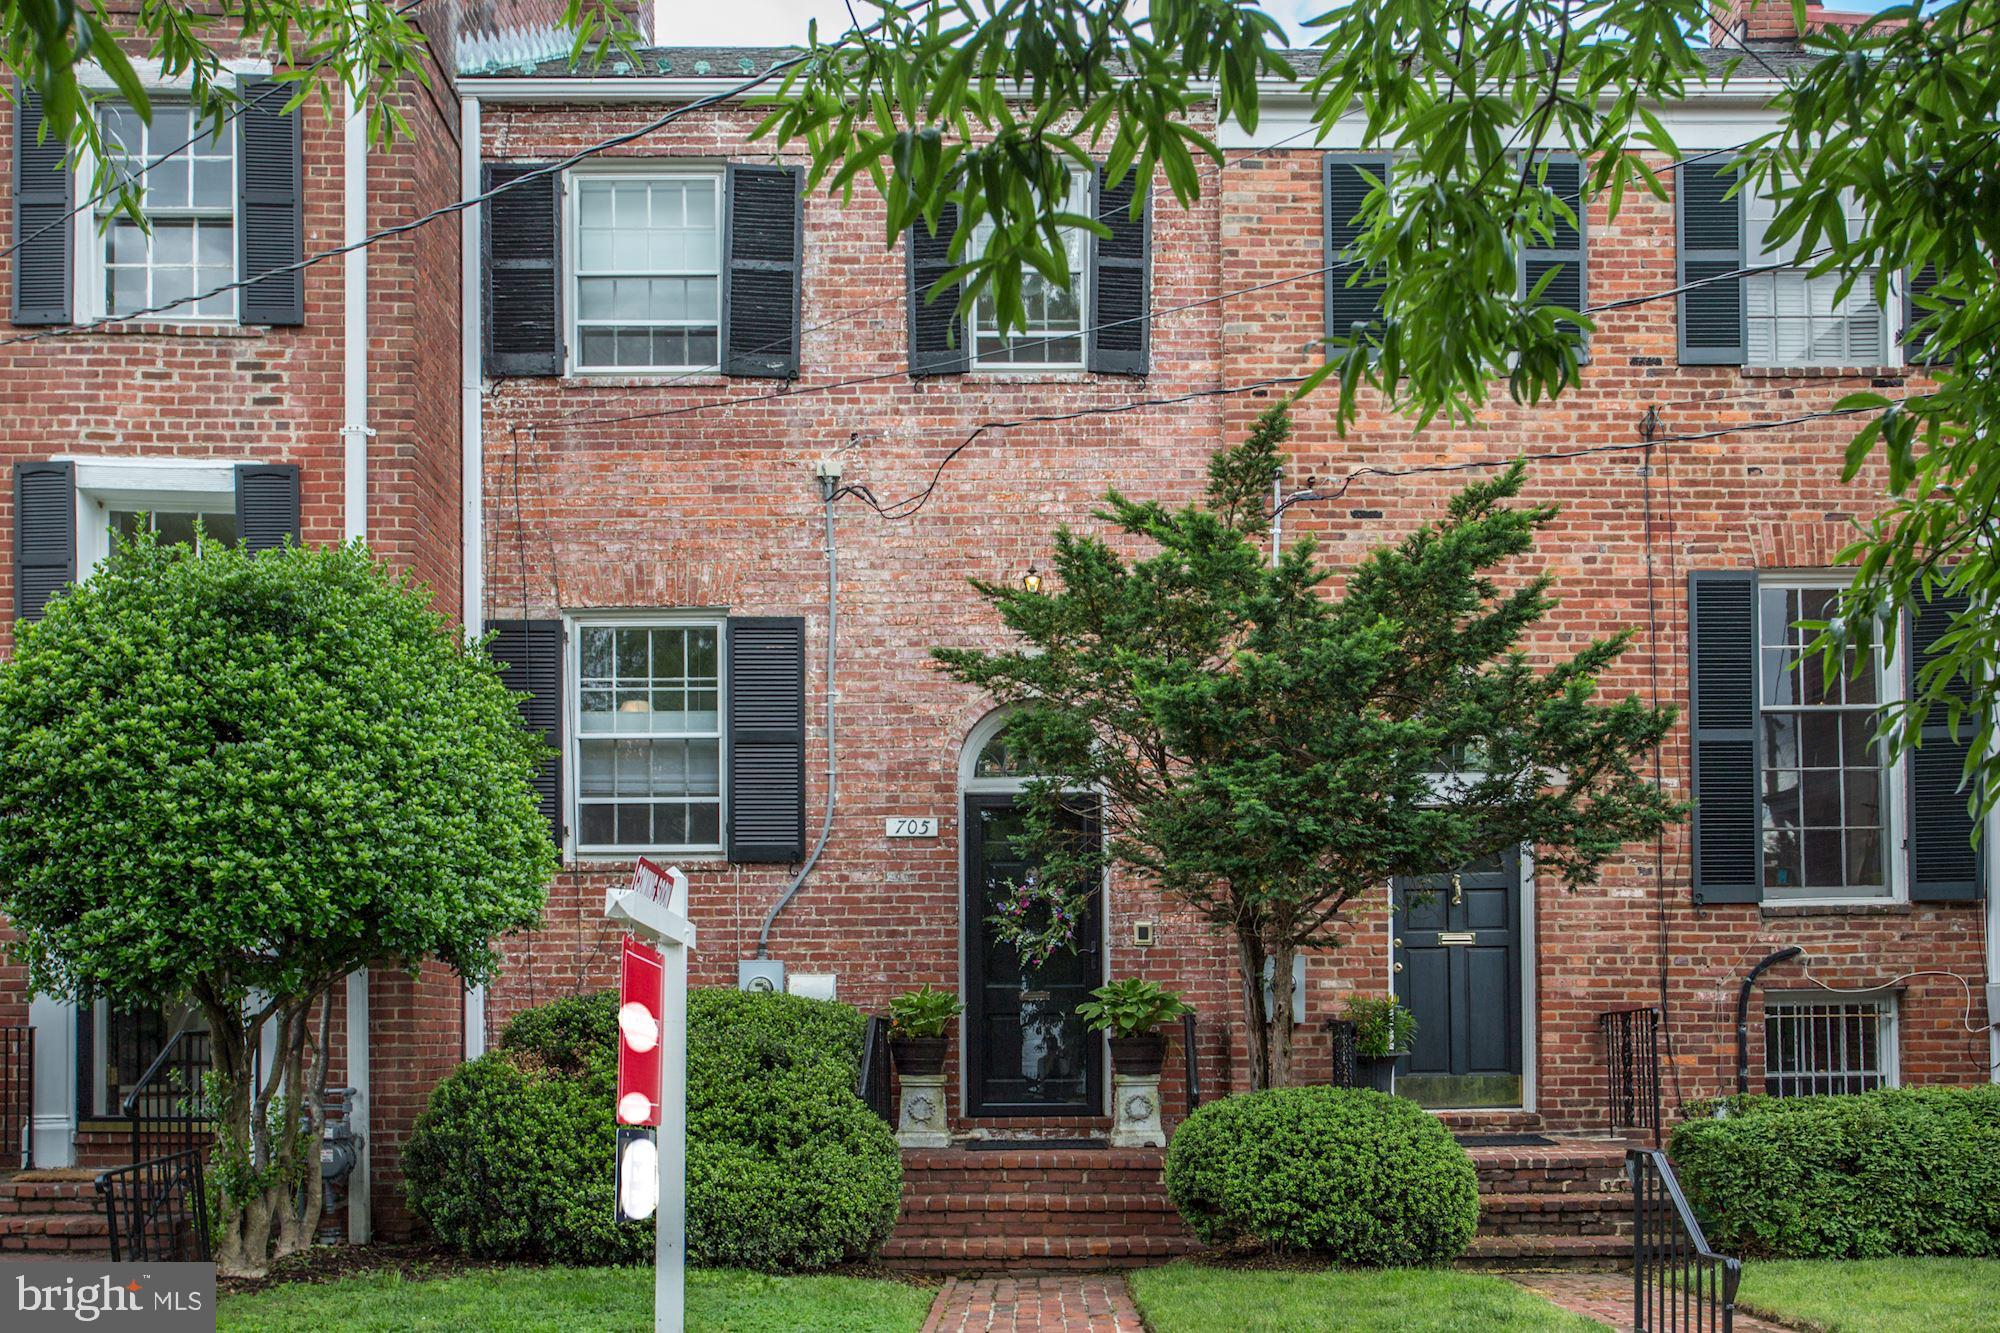 $35K PRICE REDUCTION! Completely renovated, 3-level, brick townhome located in the Yates Gardens neighborhood of the SE Quadrant of Historic Old Town Alexandria! Walls were removed & reconfigured to create new, open floor plans on the 1st & 3rd levels of the home. The 1st Floor comprises heated floors throughout, an open kitchen with a spacious island with granite countertops, a copper forged bar sink, additional storage & seating for four.   The space is complemented by a separate dining area which leads to the outdoor, private oasis - a large brick patio & tiered garden of mature plantings & trees.The living room is light-filled & open with floor-to-ceiling windows, a wood-burning fireplace, & a reading cove bookended with built-ins. The 3rd Floor comprises a master bedroom with en-suite bath & a double-sided, walk-in closet. The owner added a 2nd full bath to complement the guest bedroom. The attic space has been transformed into an accessible space with pull-down steps & sub-flooring to provide off-season storage. There is one assigned off-street parking space located at the foot of the front door. No HOA!  This home has it all!